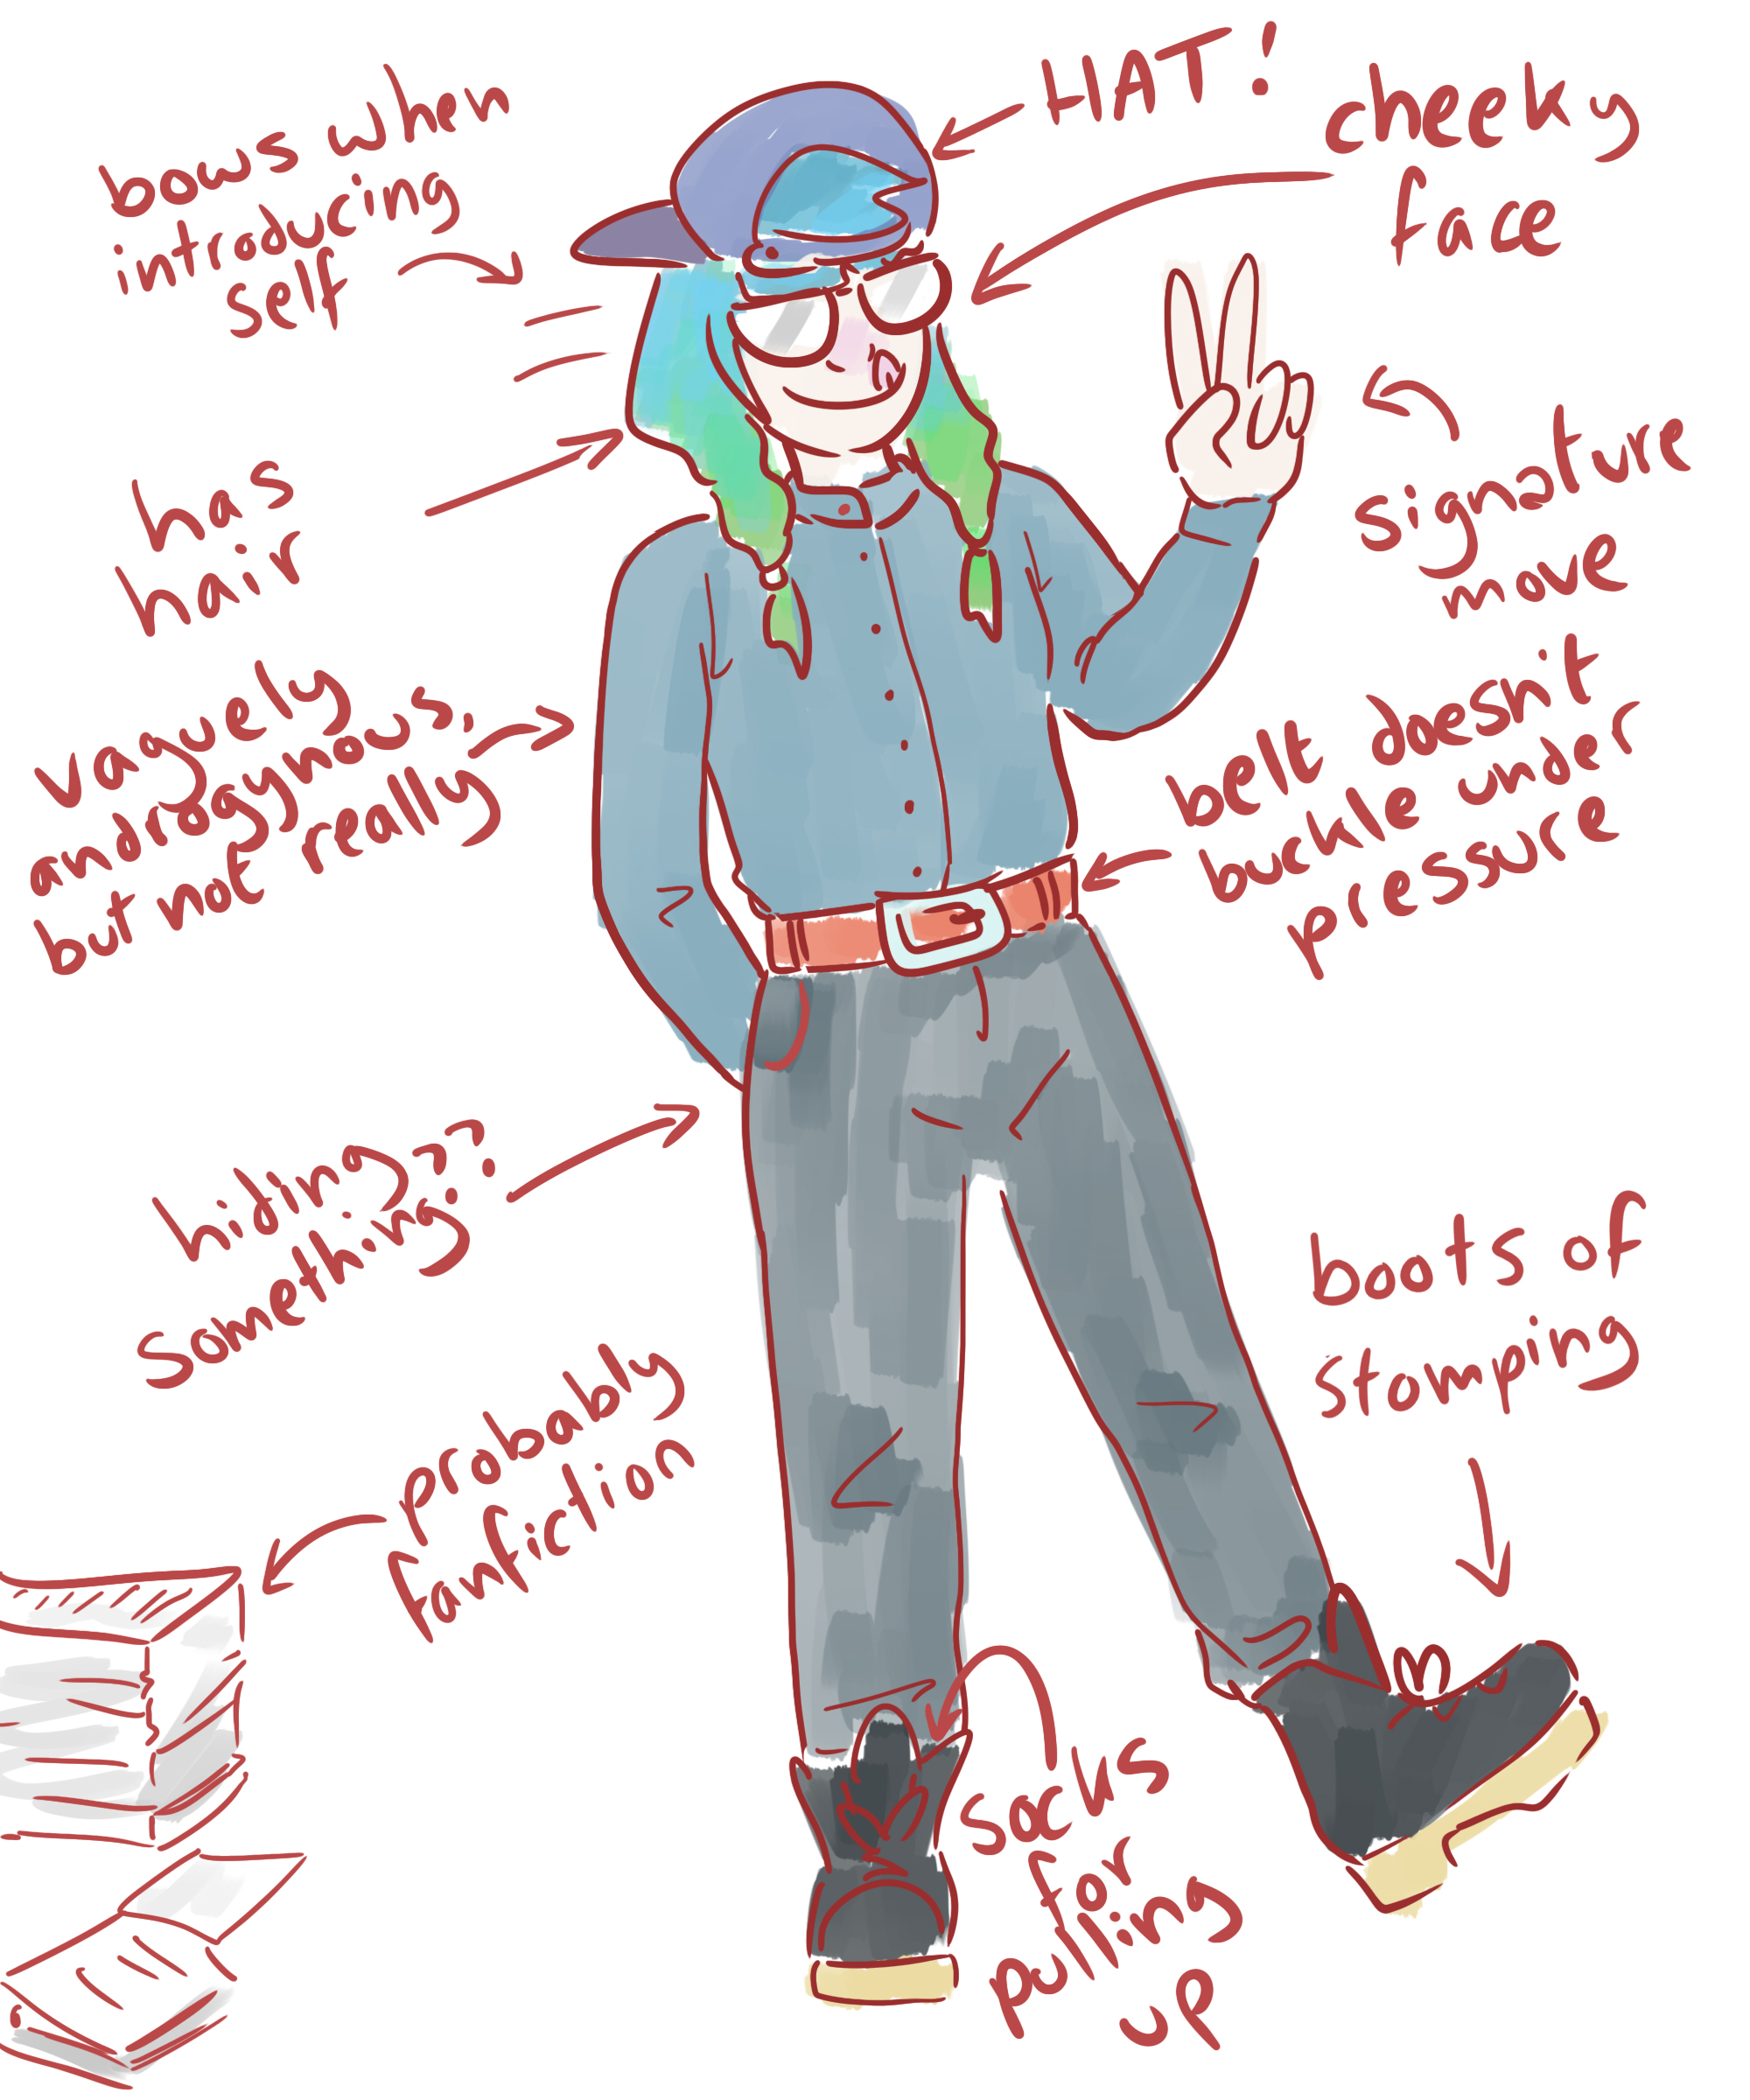 An illustration of myself with some labels for key traits, which are: bows when introducing self; hat; cheeky face; has hair; peace sign signature move; vaguely androgynous dress sense, but not really; belt doesn't buckle under pressure; second hand could be hiding something behind back; boots of stomping; socks for pulling up; and a pile of papers that are probably fanfiction.